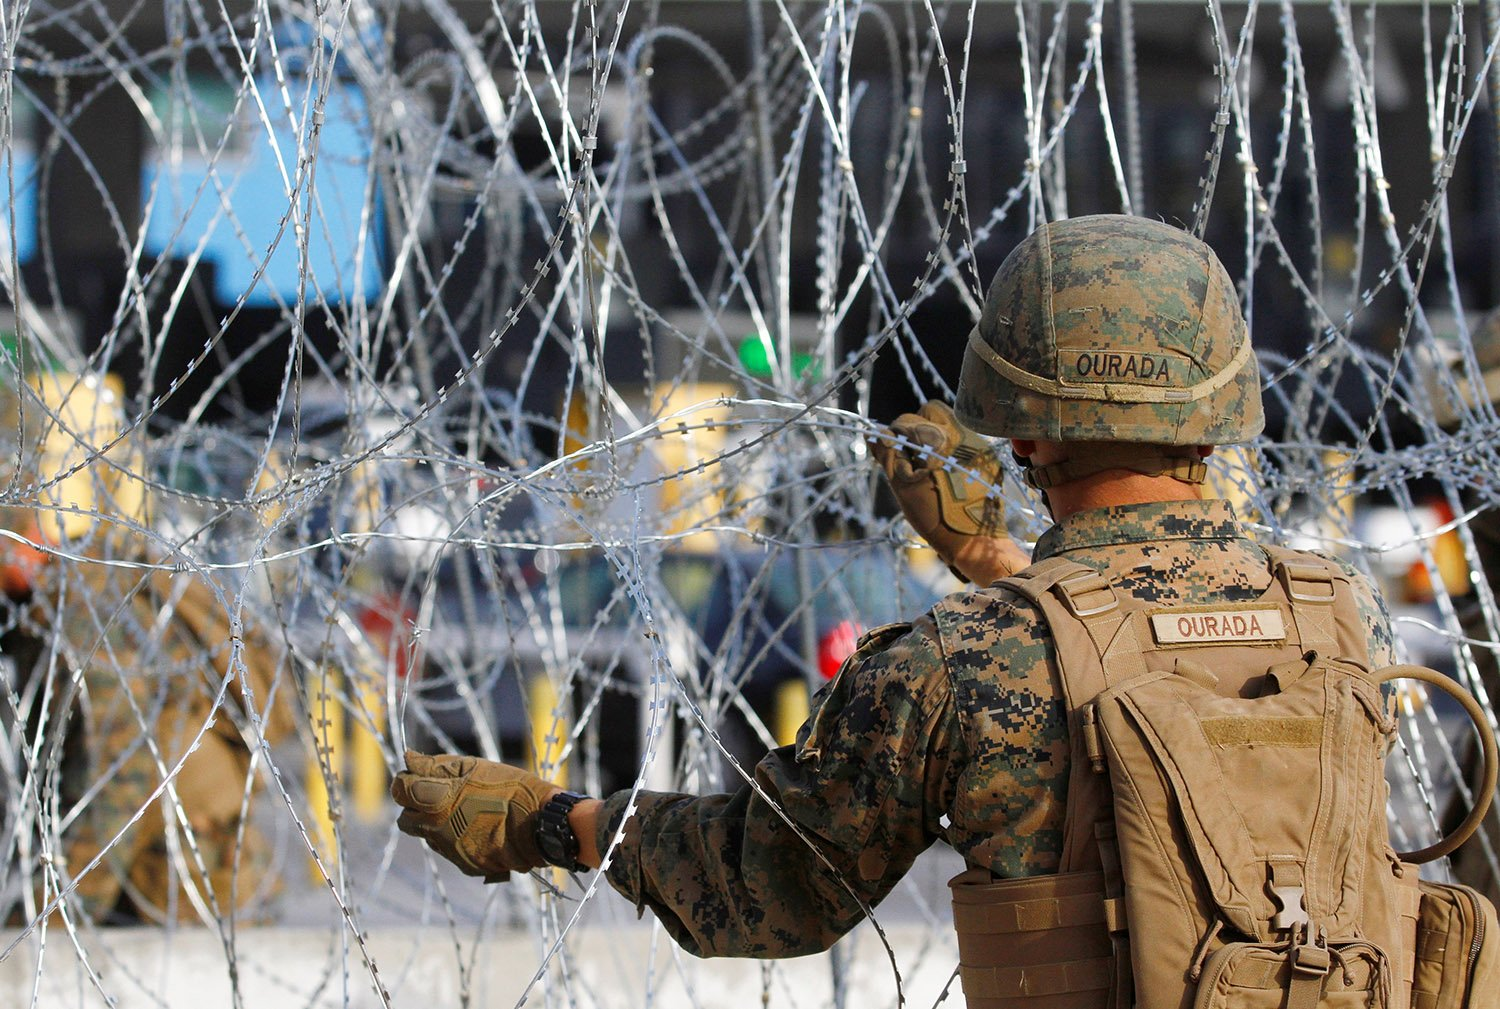 A U.S. Marine sets up a barricade with concertina wire, at the border between Mexico and the U.S., in preparation for the arrival of migrants, in Tijuana, Mexico November 13, 2018. REUTERS/Jorge Duenes